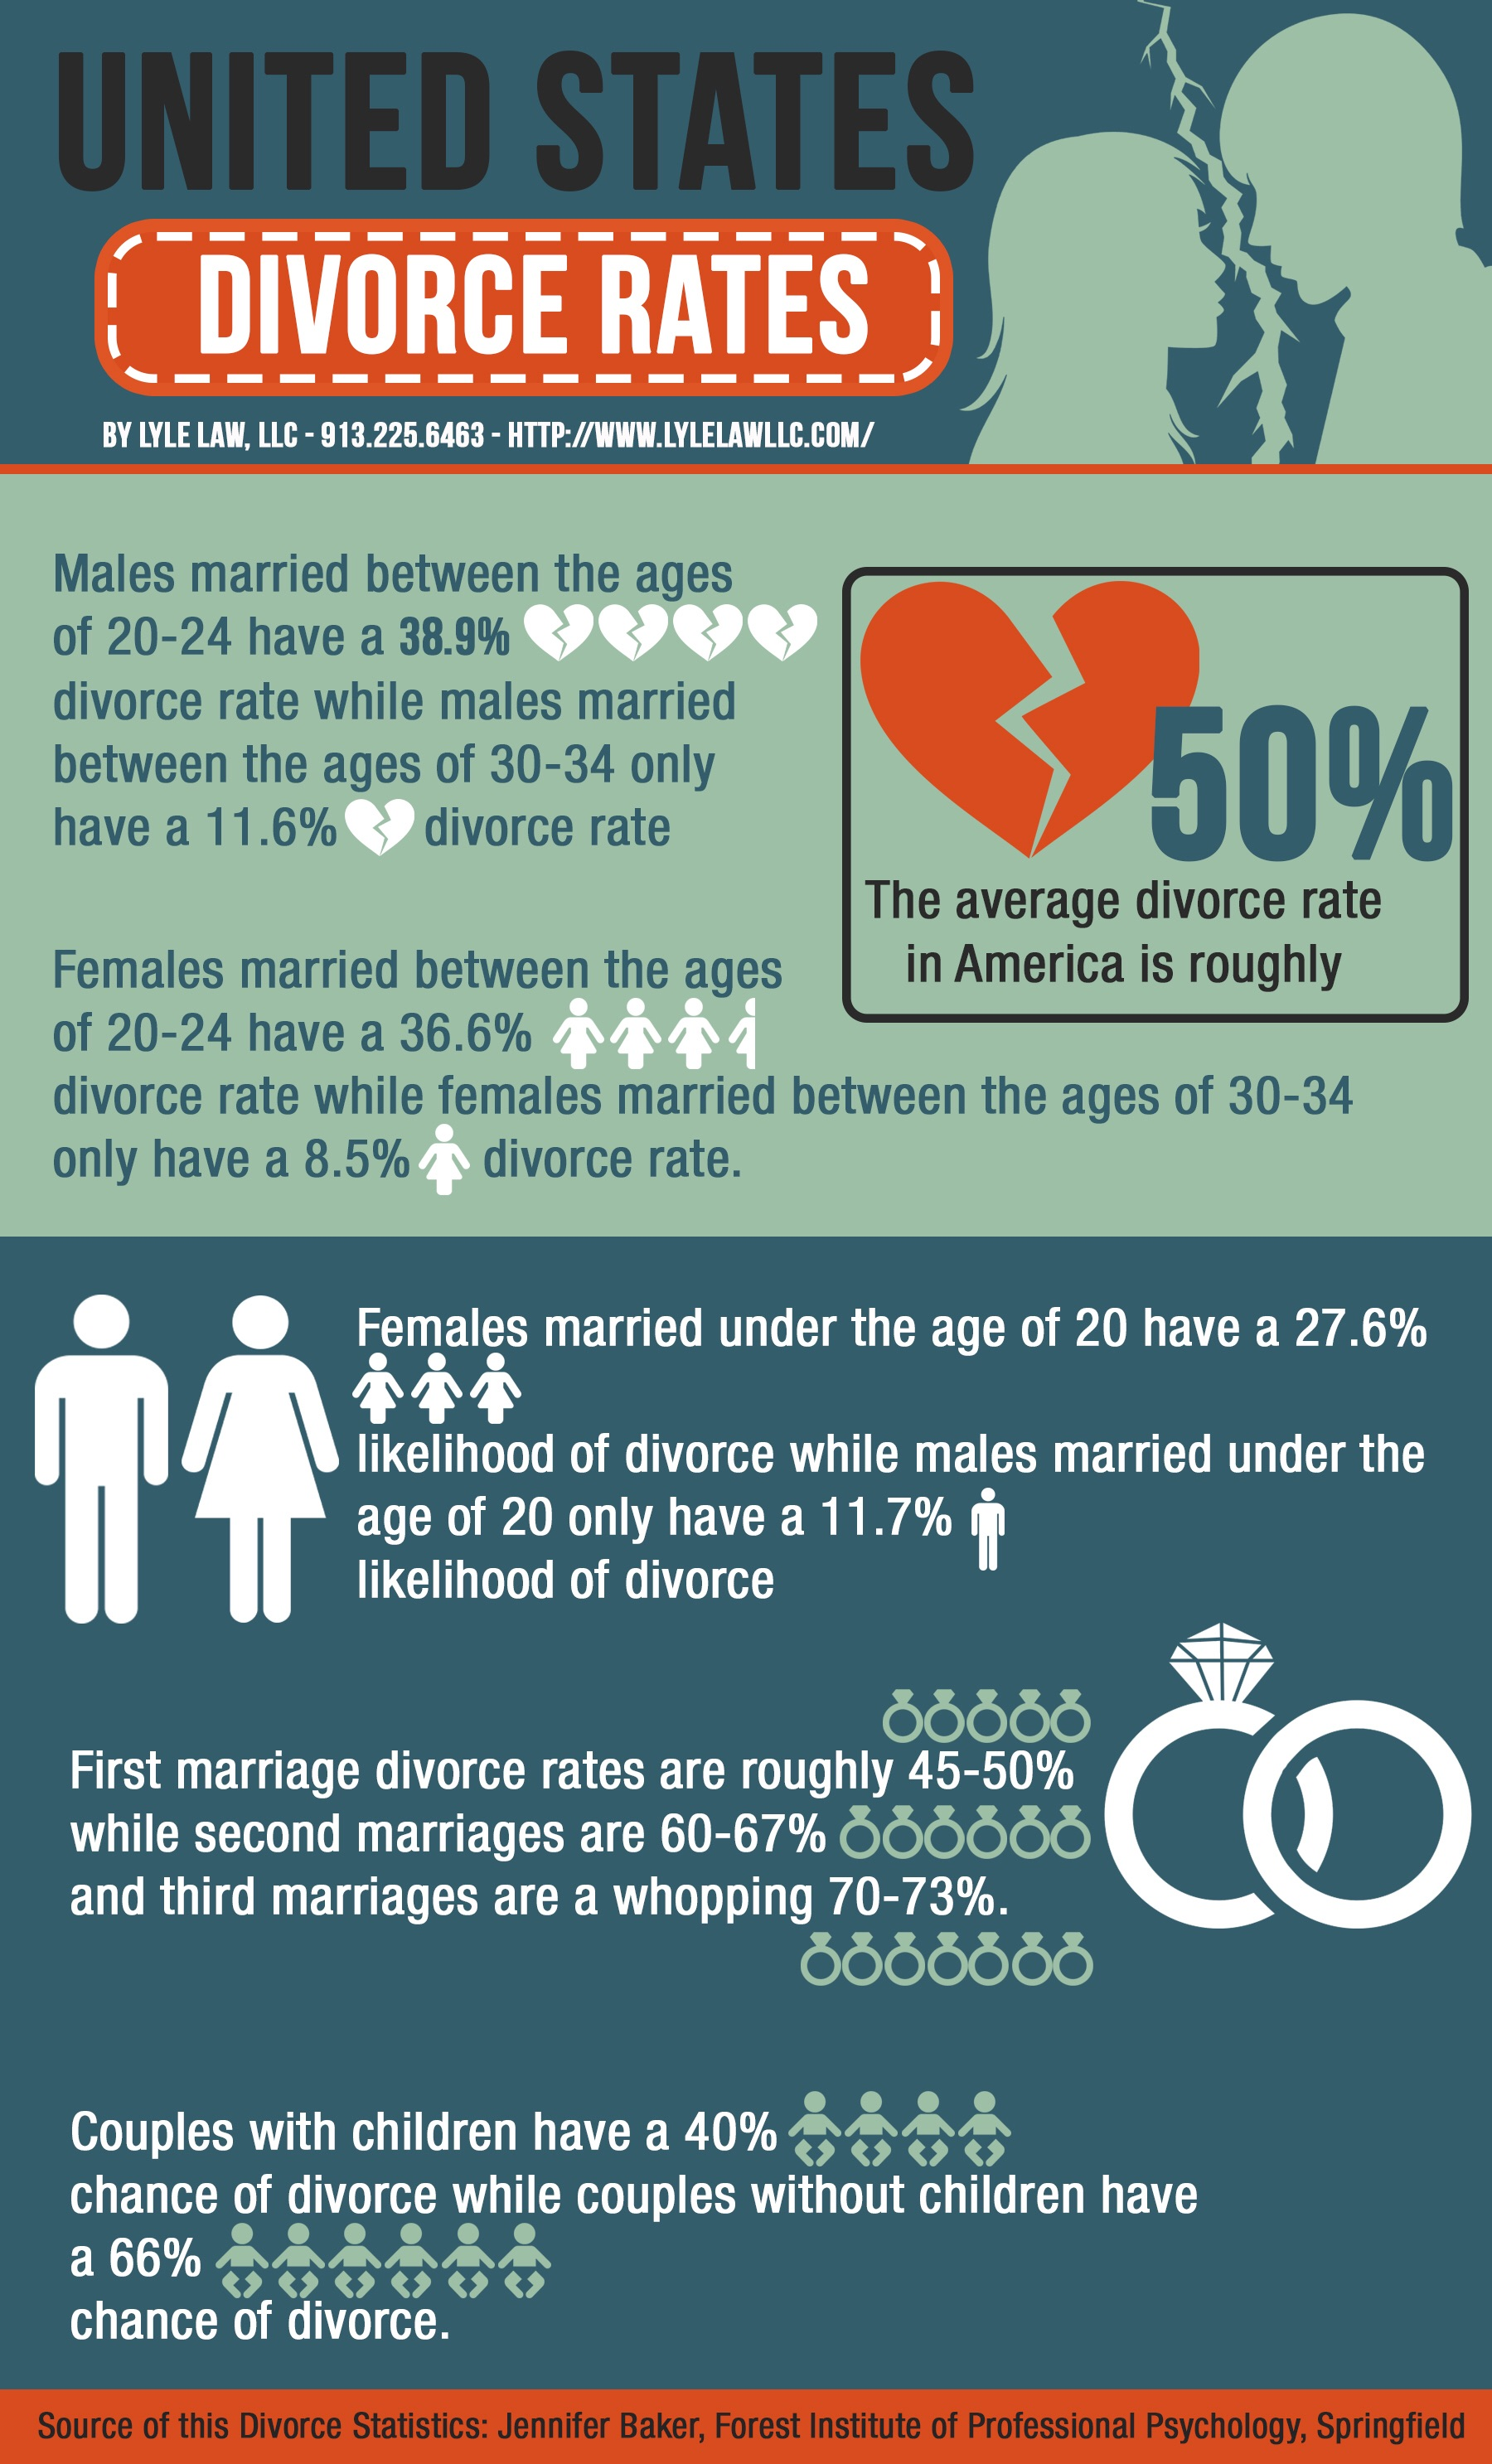 The Statistics About the Divorce Rates in America